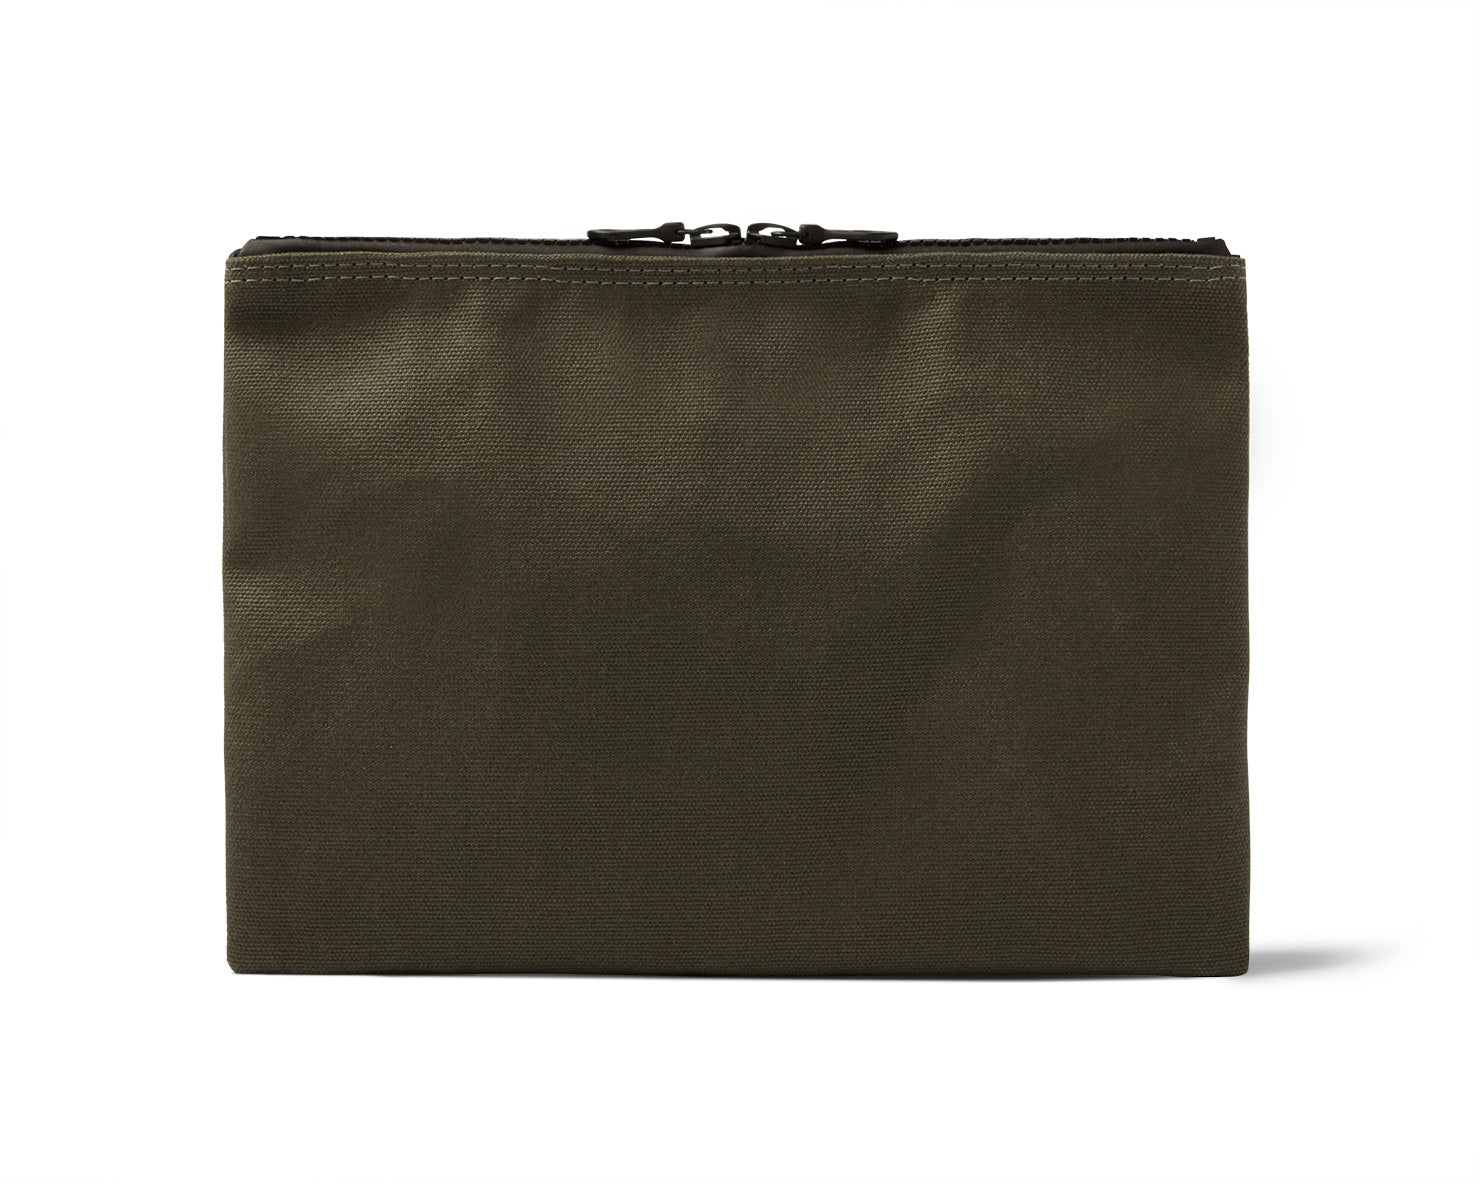 MEDIUM ZIPPERED POUCH | KILLSPENCER®  - Olive Drab Canvas